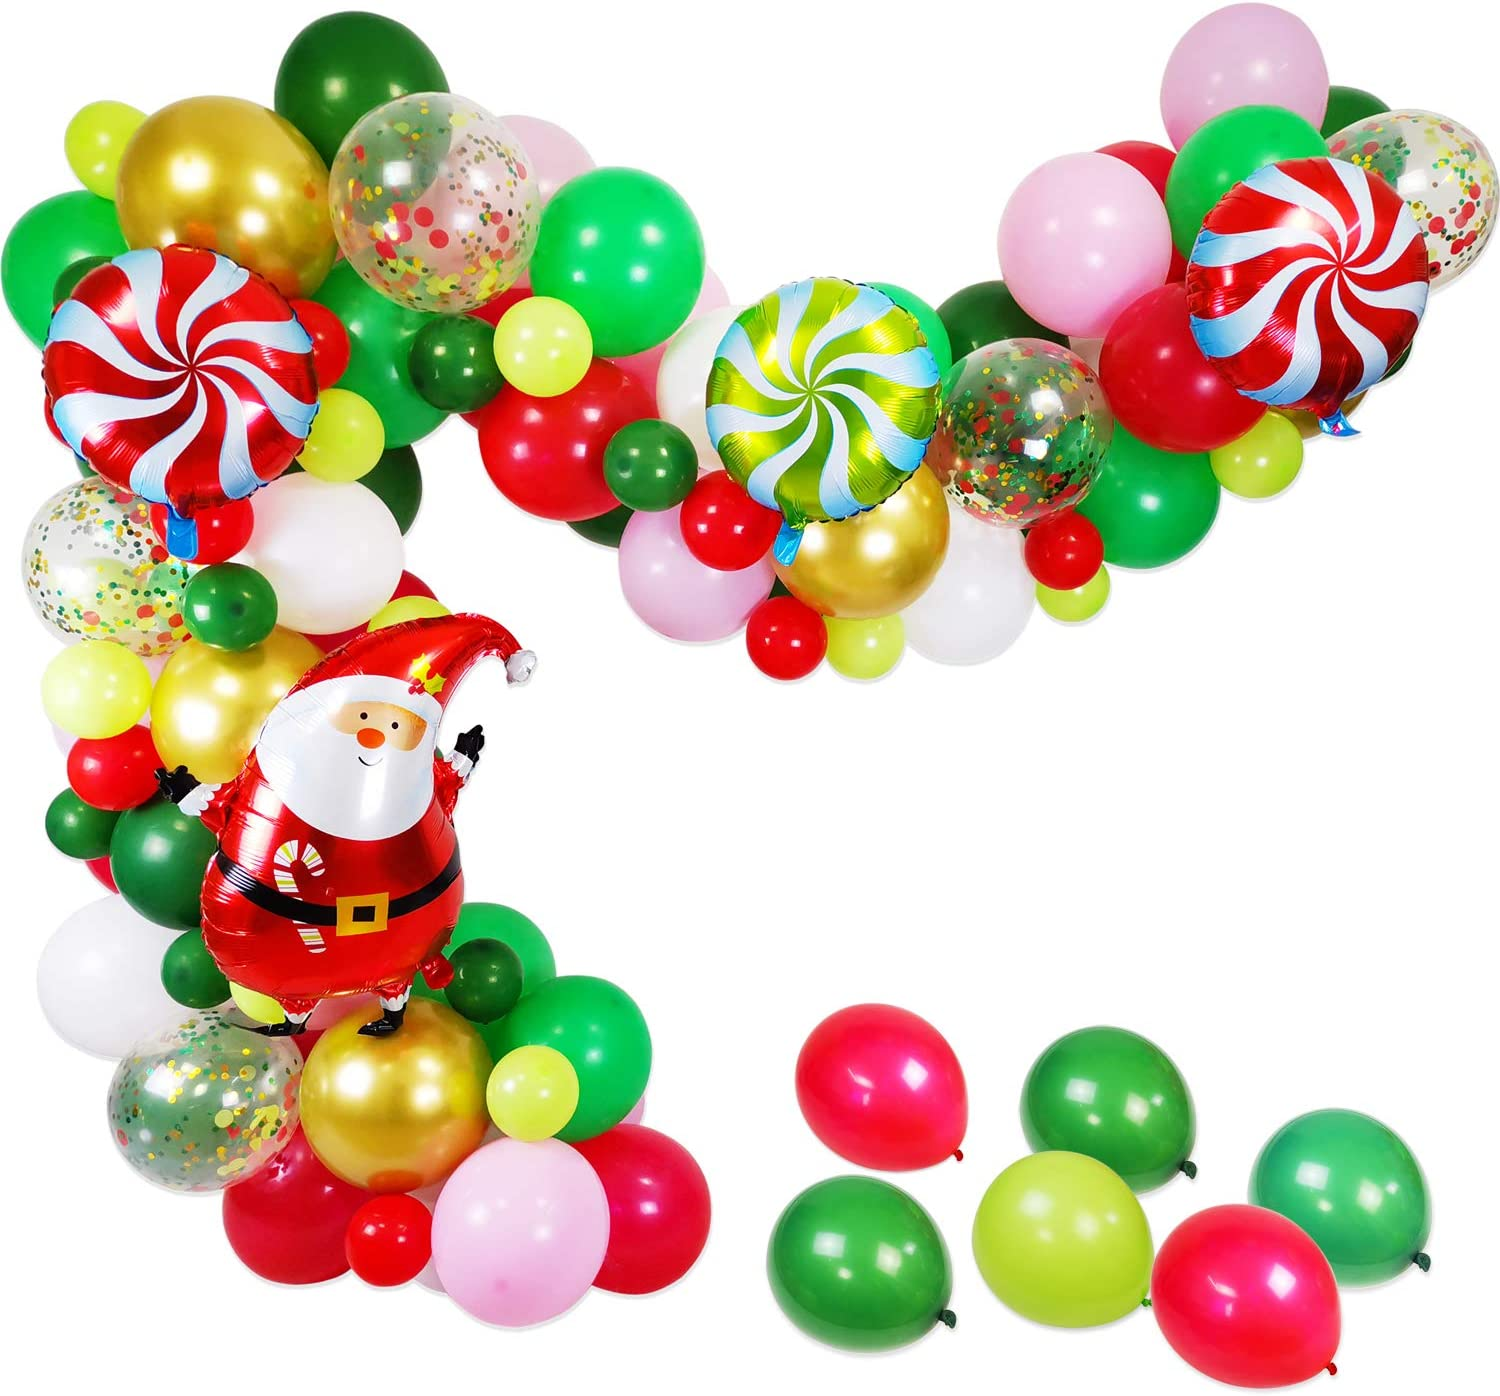 50 pieces 12 Inch Christmas Balloons Garland Arch Kit with Red Ribbon Latex Helium Balloons Confetti Deco Balloons Colorful Balloons Christmas Party Balloons Yiran Red Green Gold Confetti Balloons